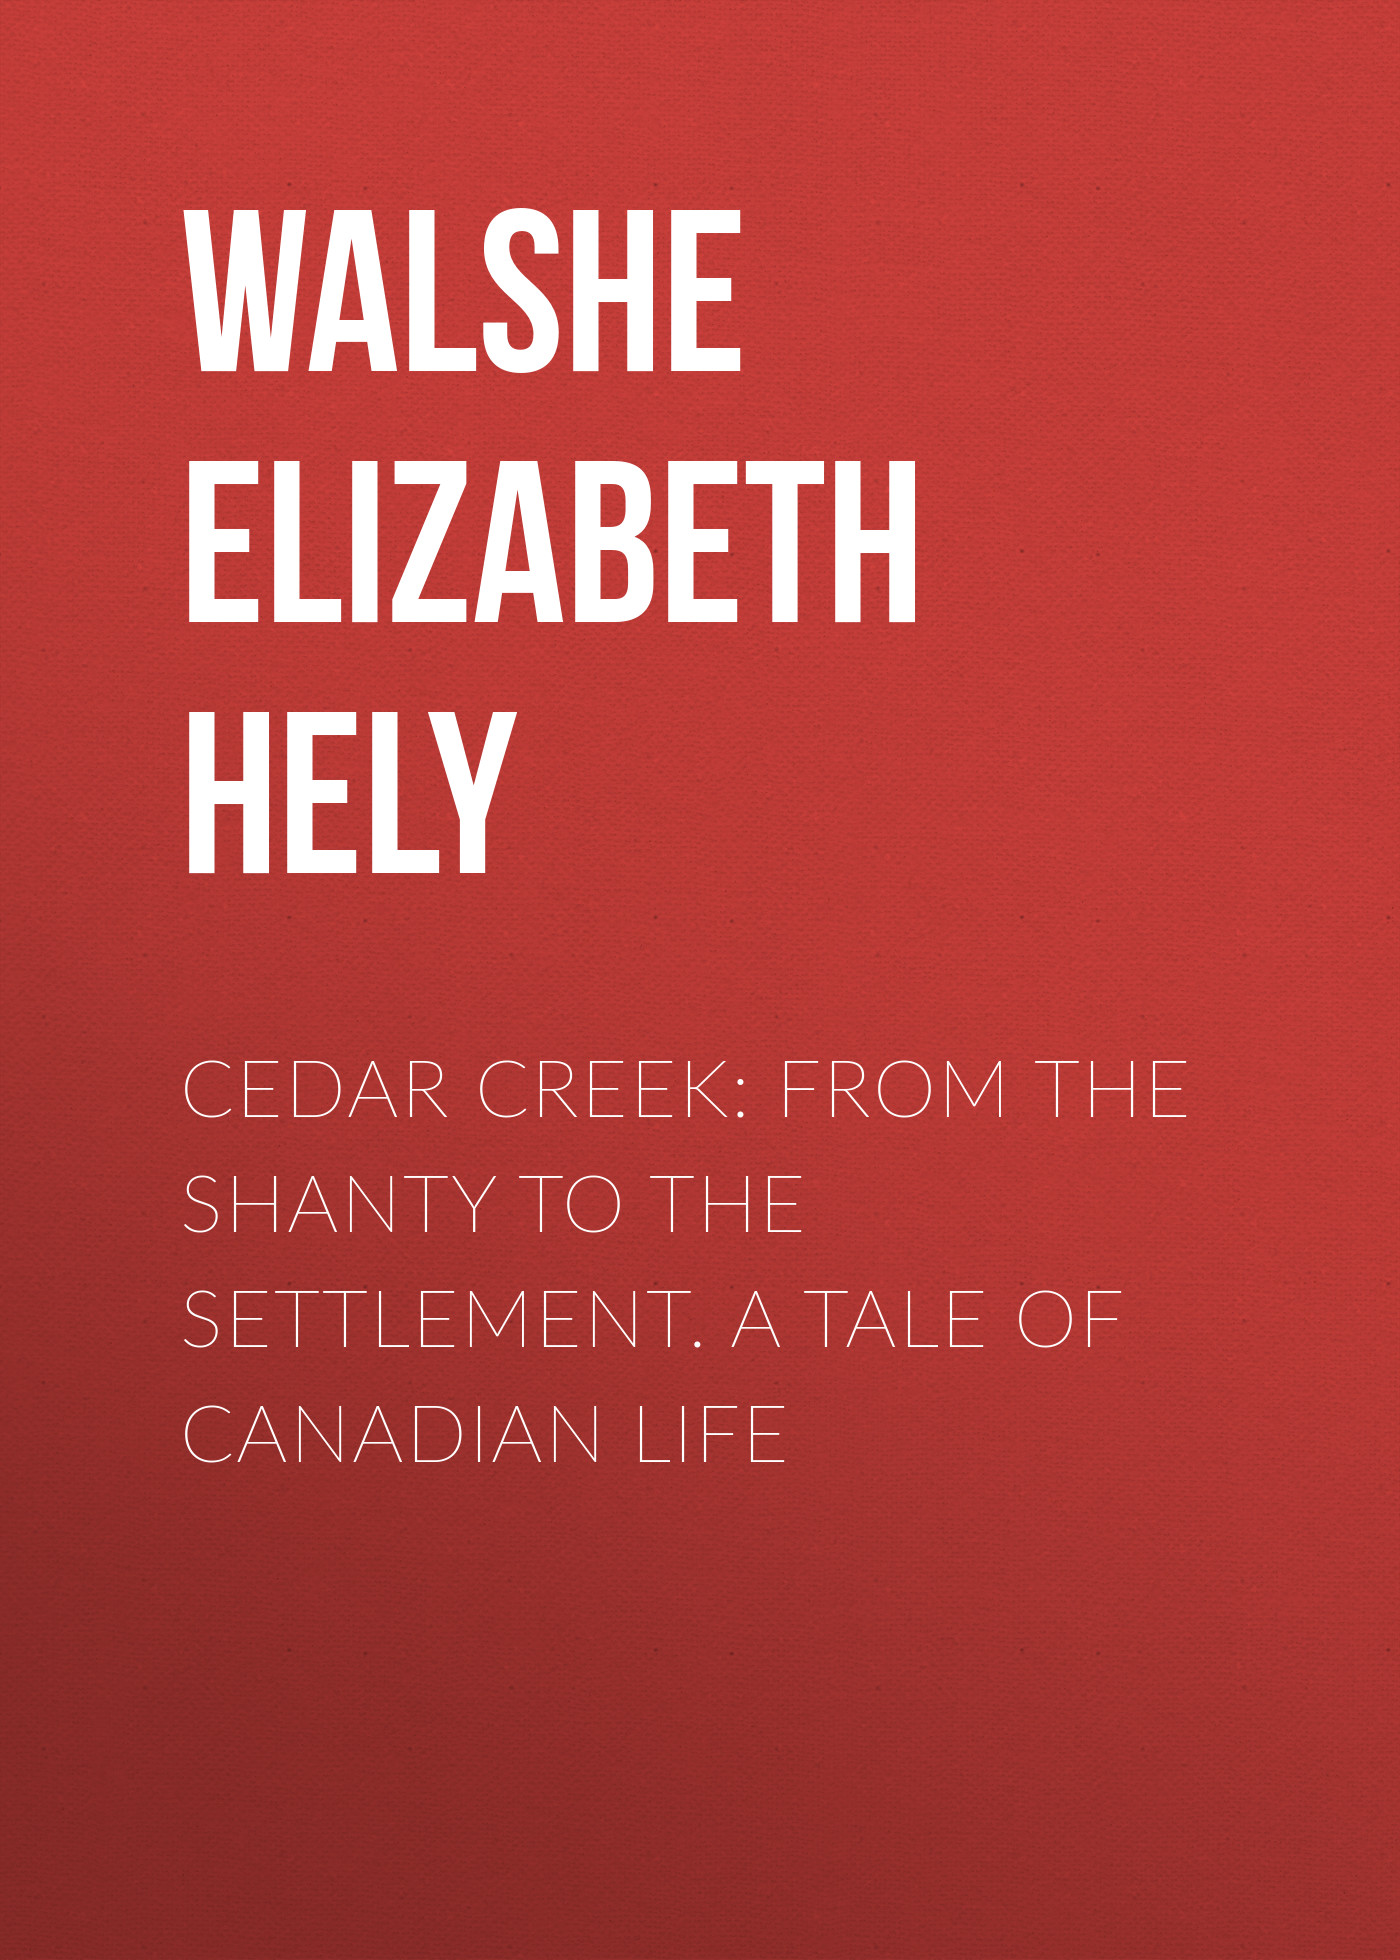 Walshe Elizabeth Hely Cedar Creek: From the Shanty to the Settlement. A Tale of Canadian Life m l abbé trochon bellegarde the adopted indian boy a canadian tale vol ii